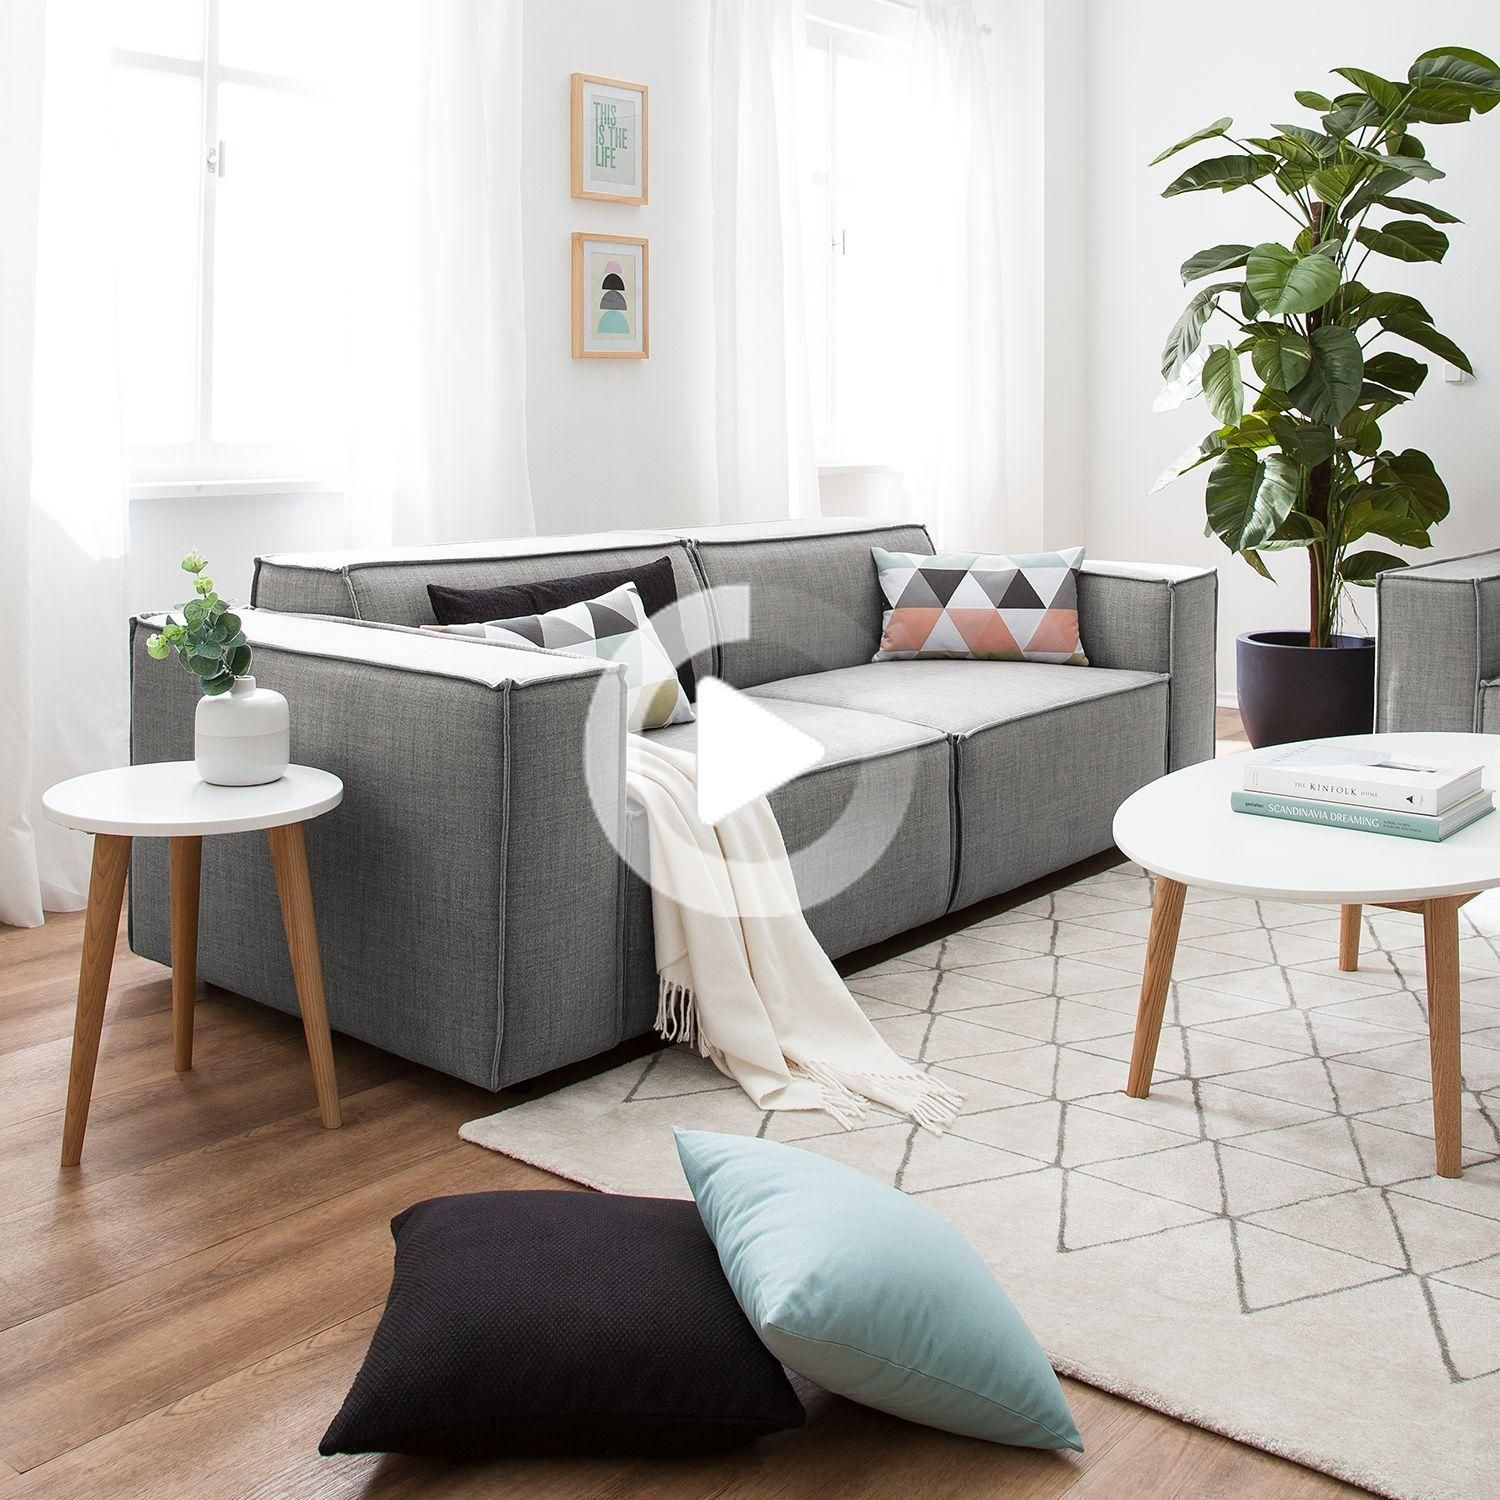 Canape Kinx 2 5 Places Tisses In 2020 Livingroom Layout Beautiful Sofas Floor Seating